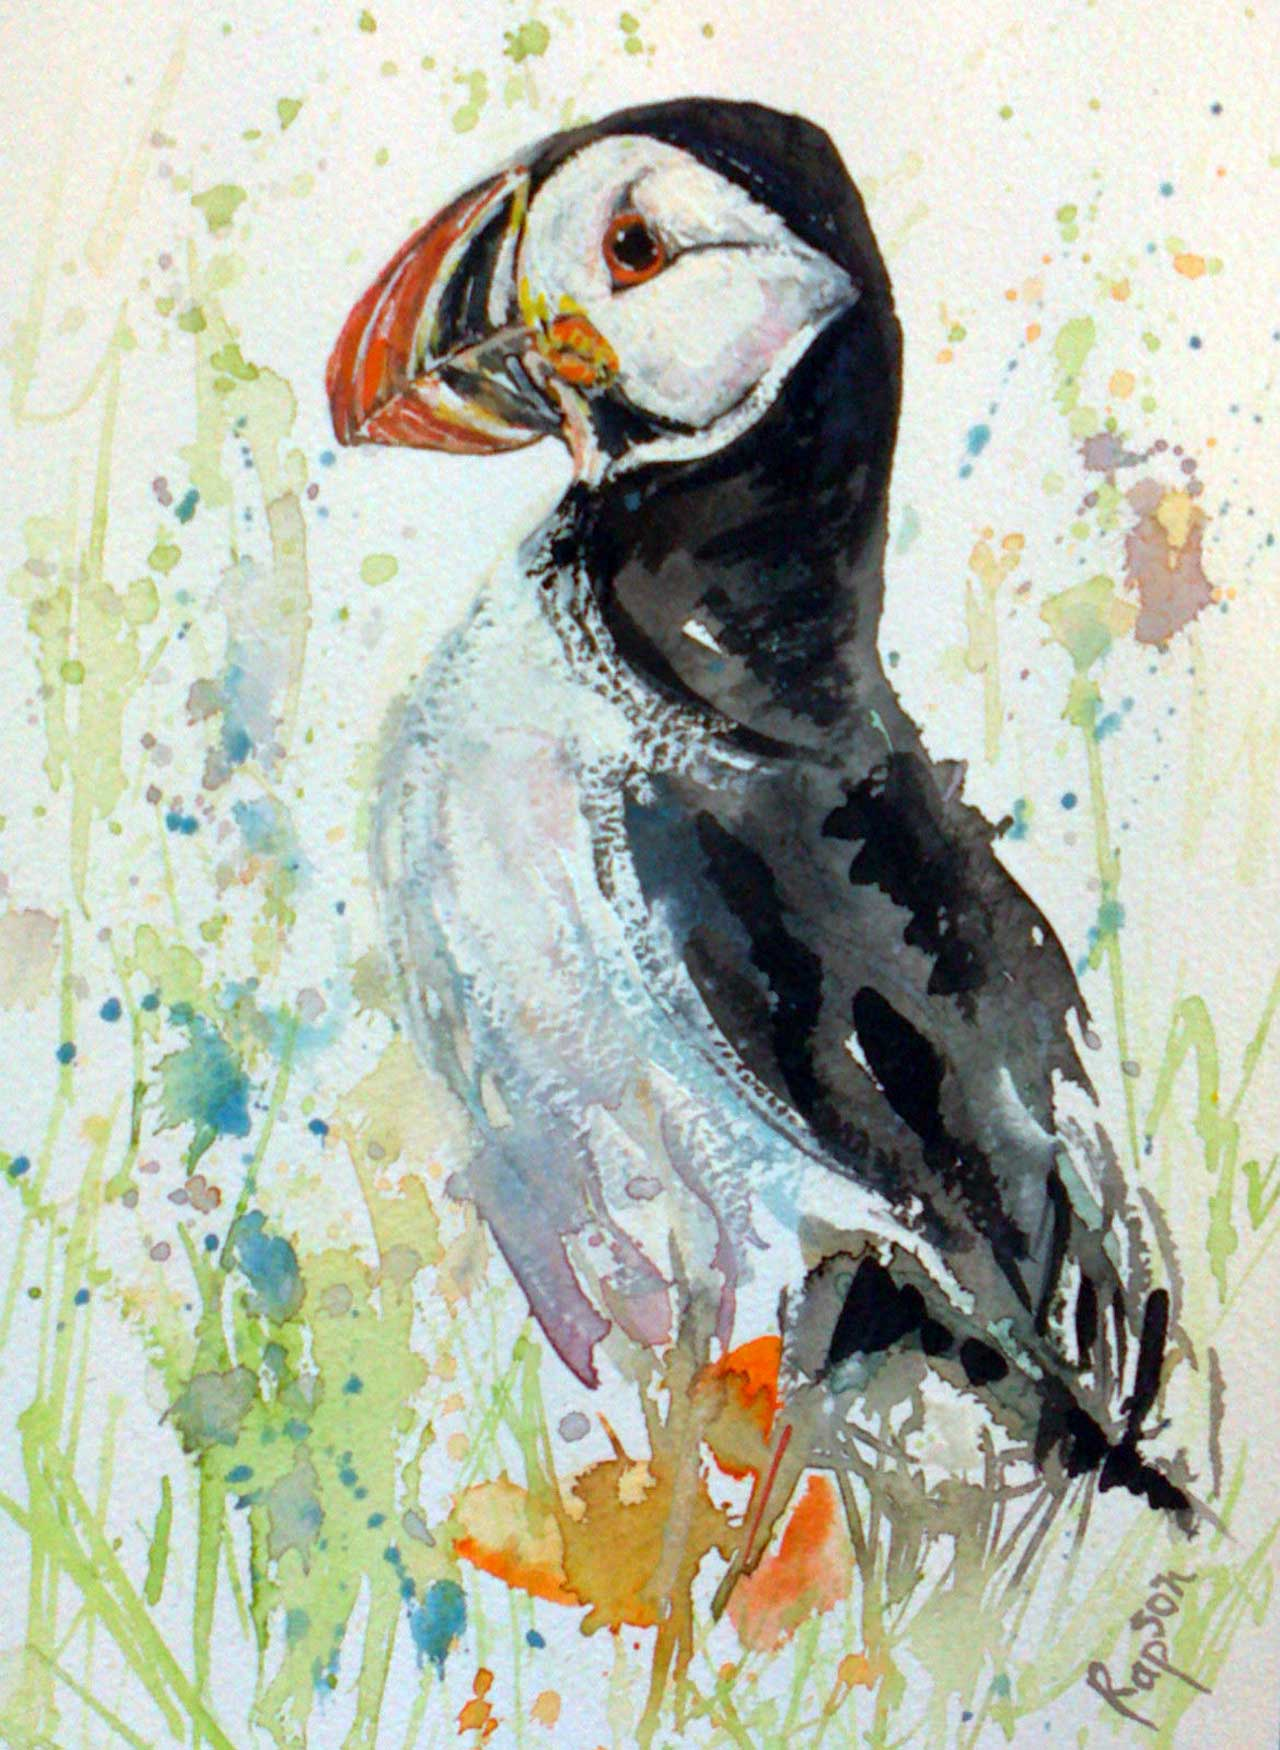 Photo: Puffin - Elaine Rapson-Grant